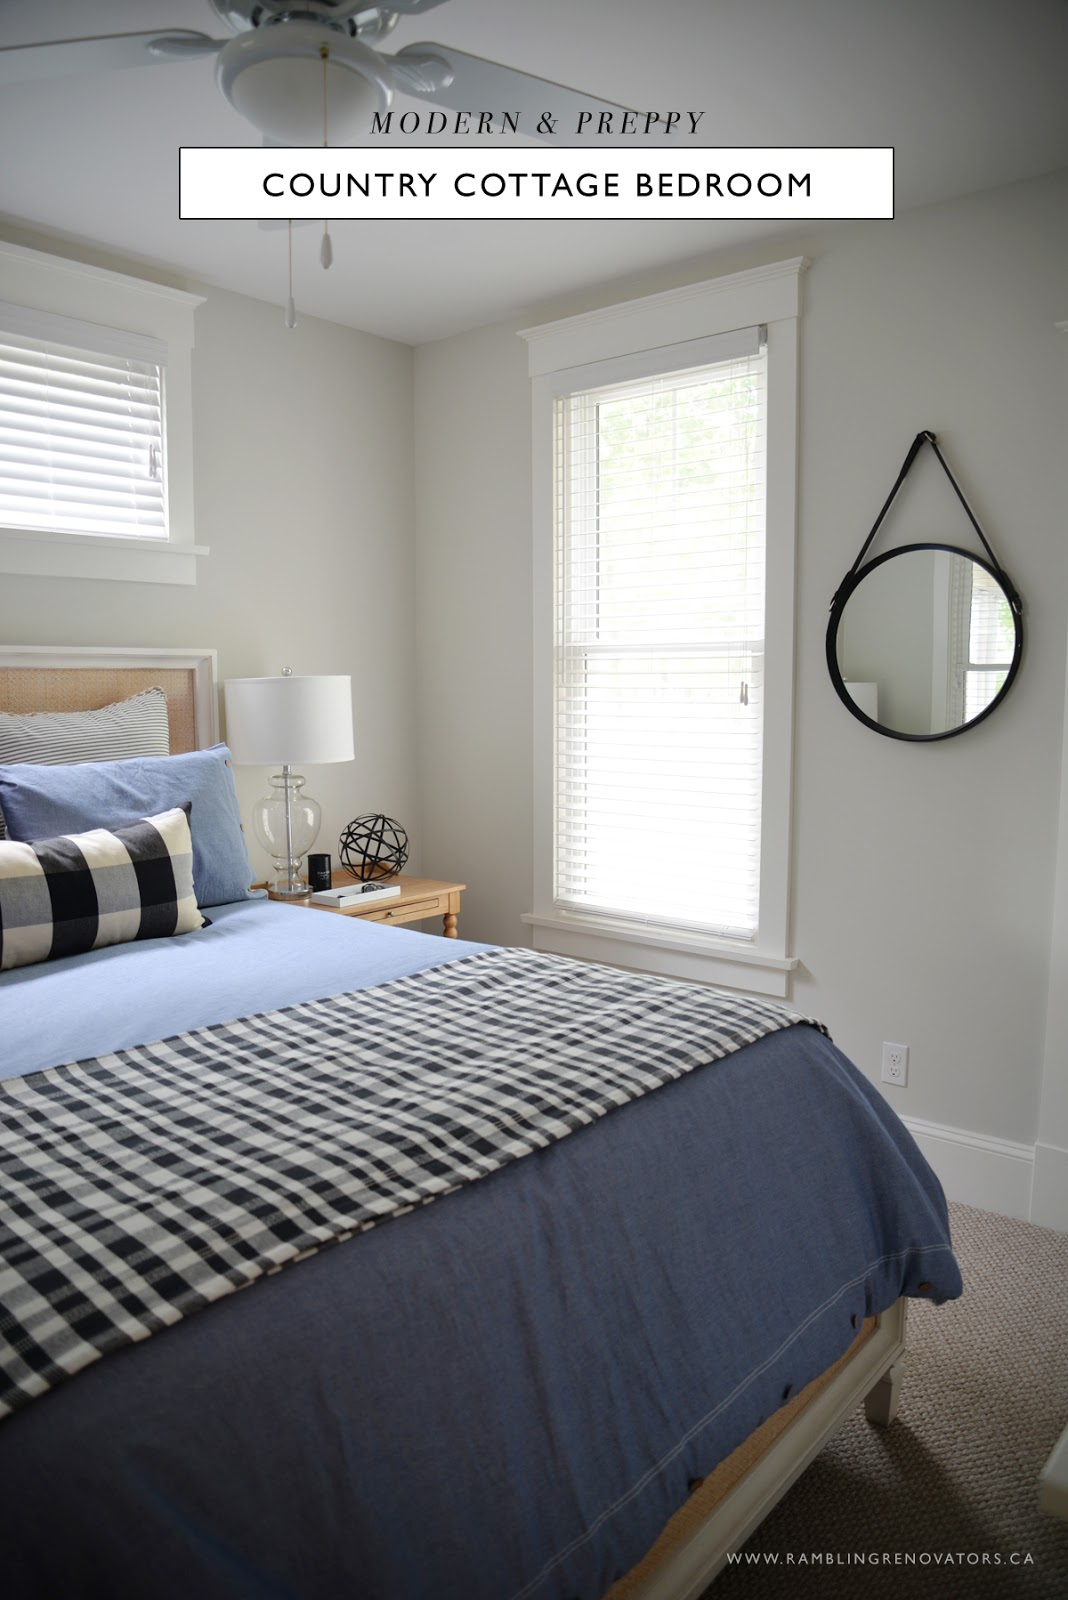 modern preppy country cottage bedroom | Ramblingrenovators.ca